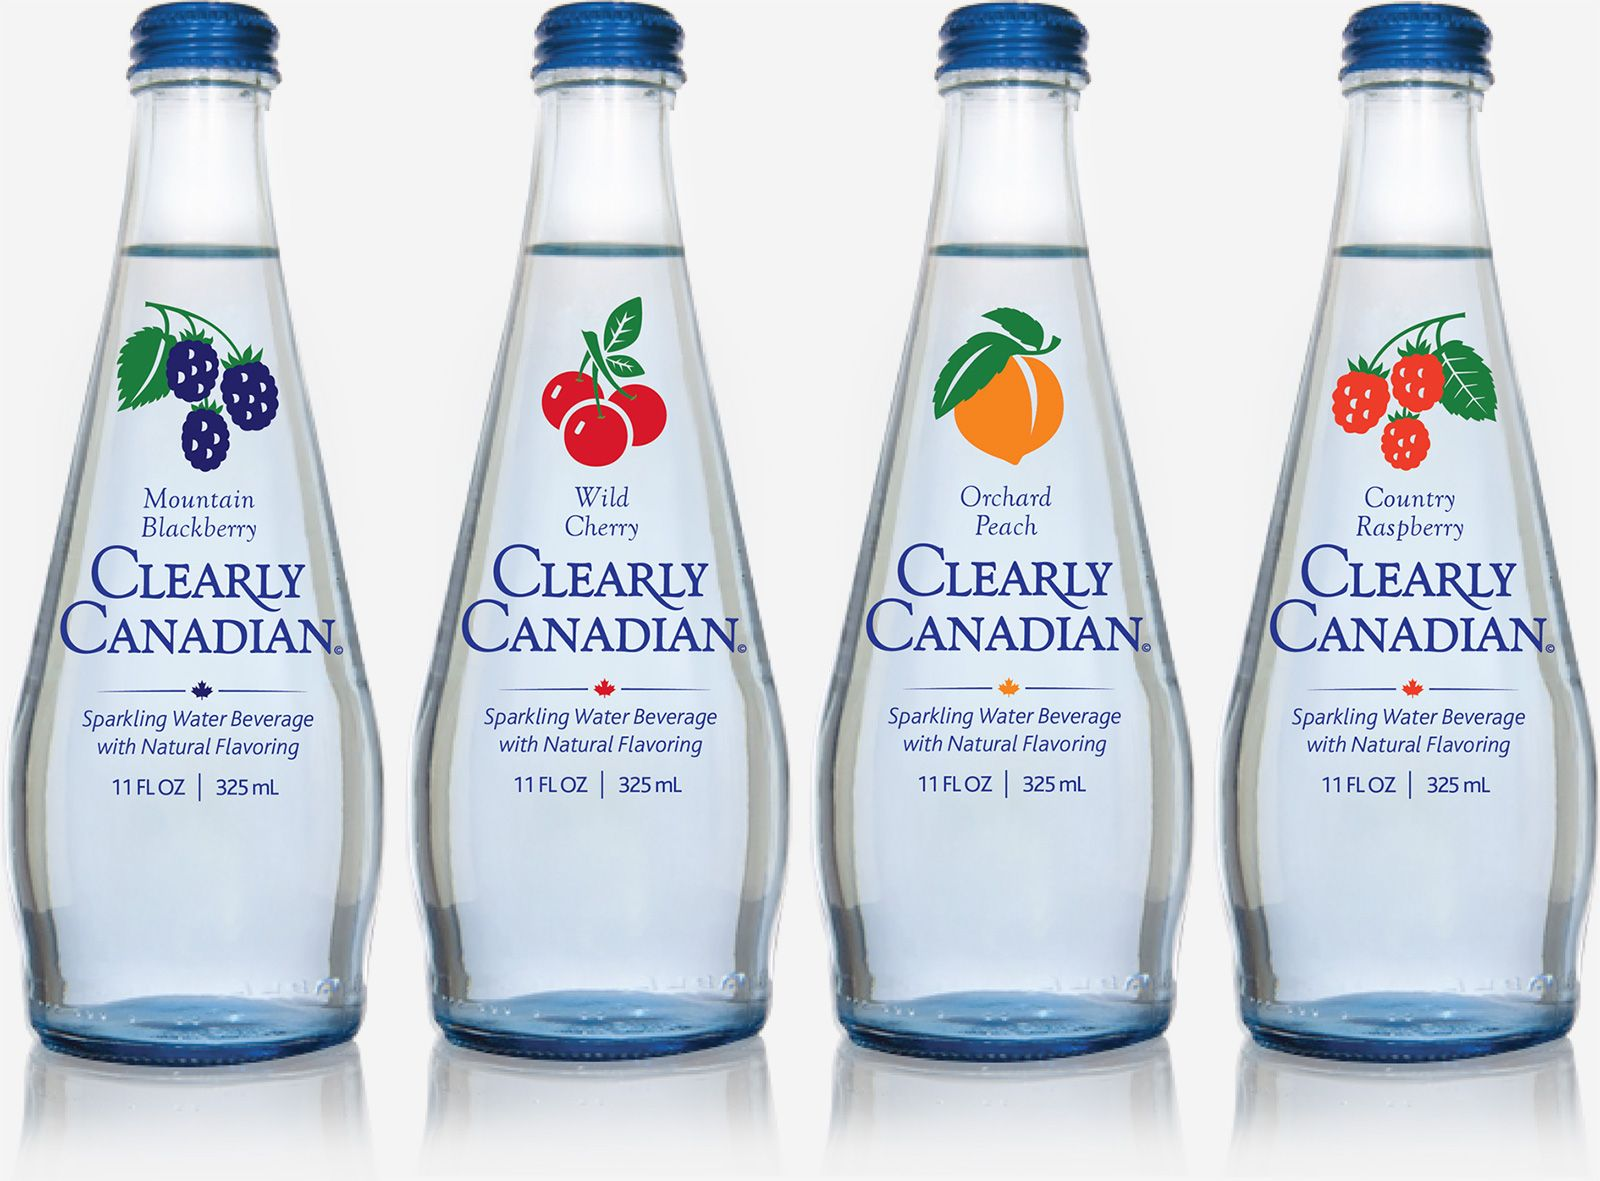 A petition to bring back Clearly Canadian. Now if only we could ...